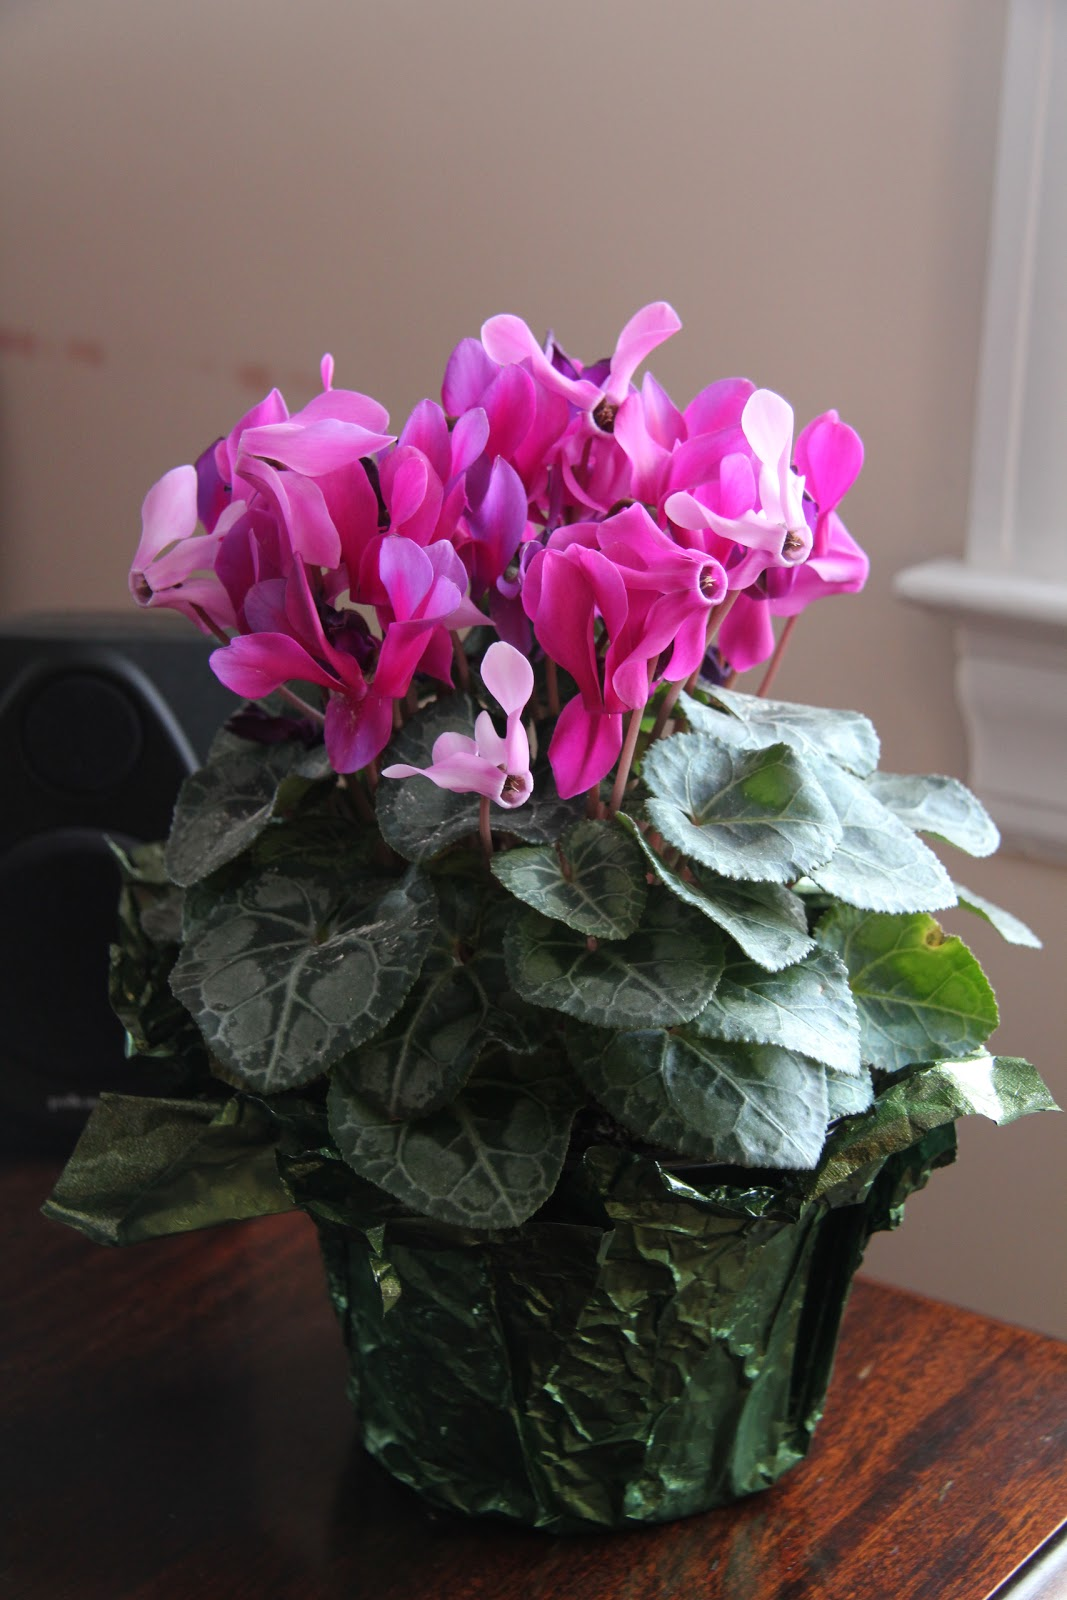 Gardening And Gardens The Real Houseplants Of New York